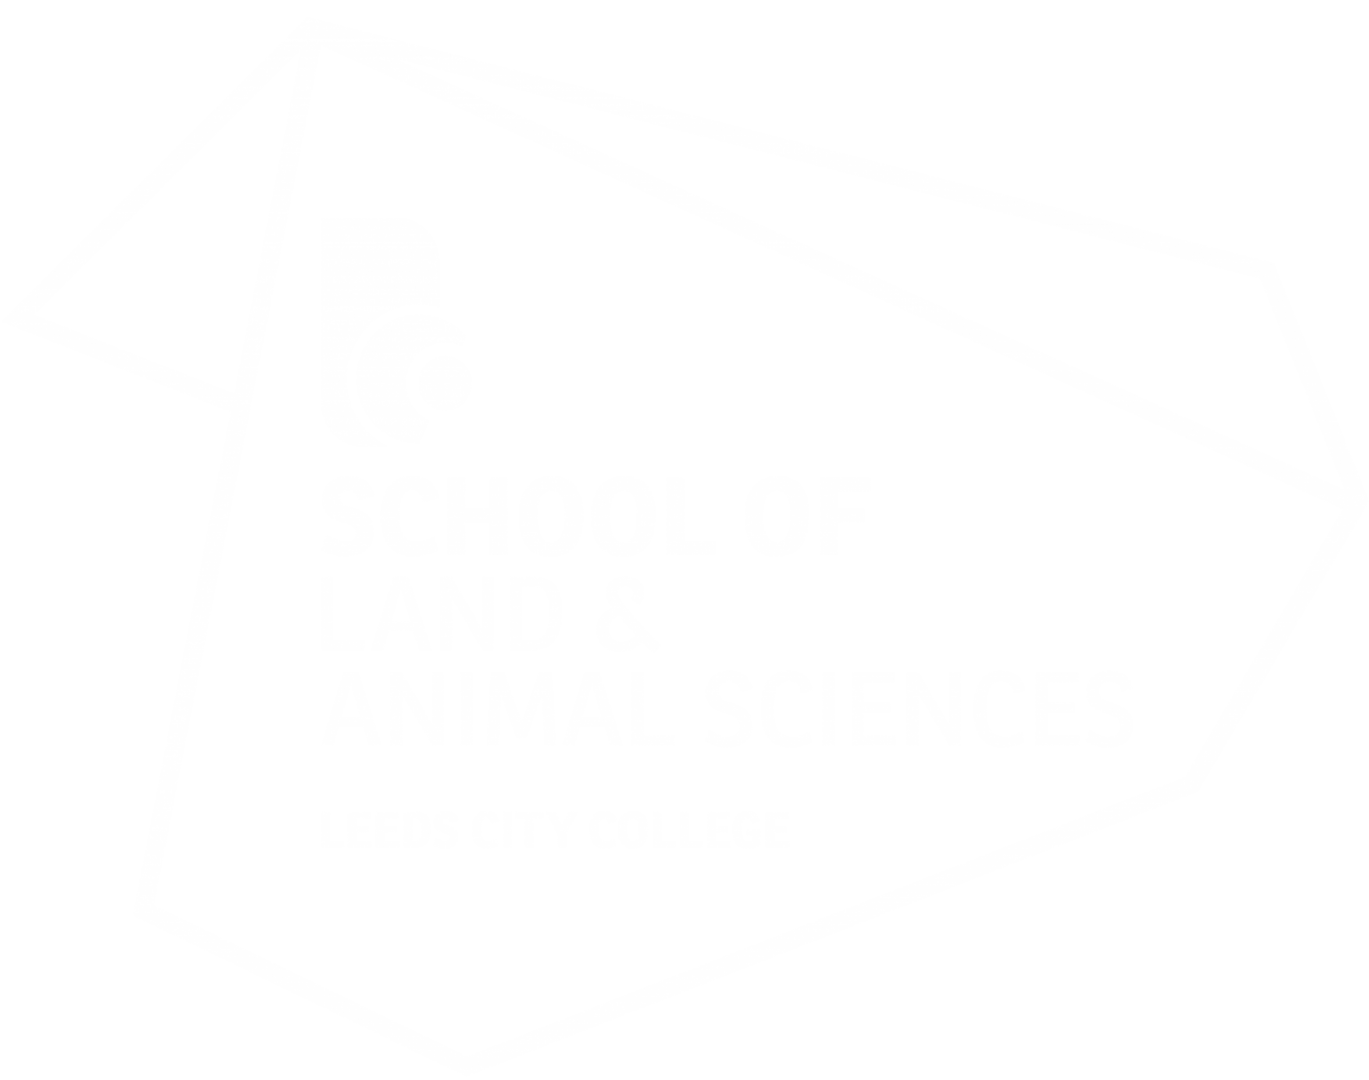 School of Land & Animal Sciences